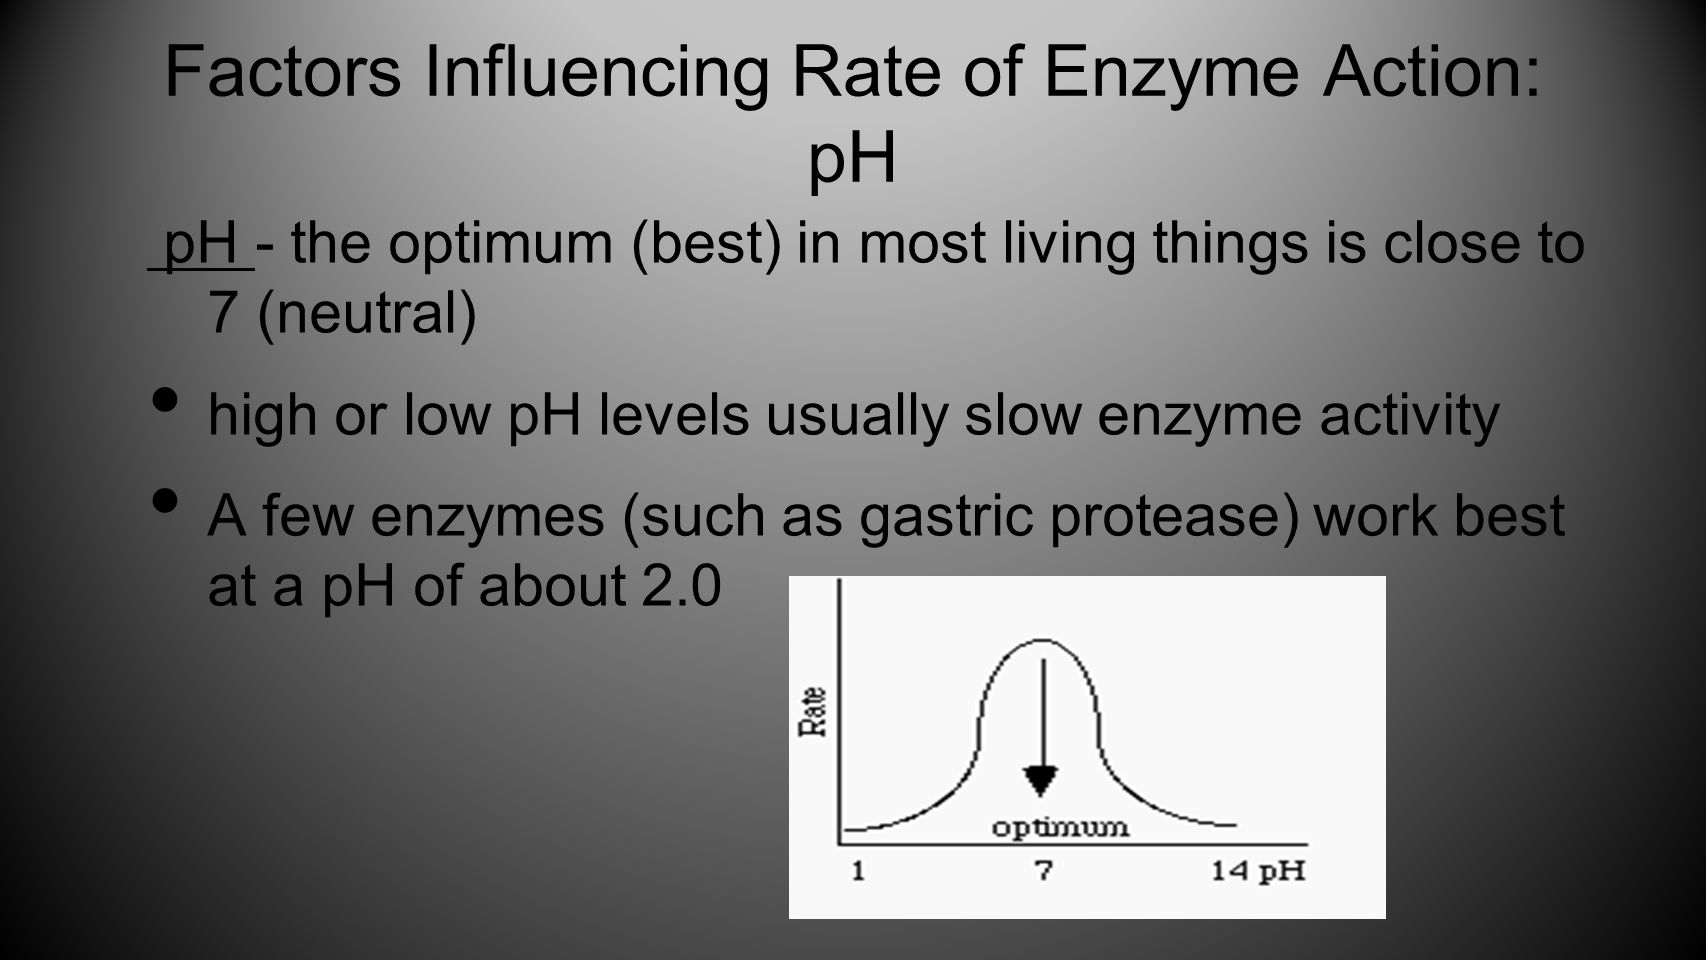 Factors Influencing Rate of Enzyme Action: pH